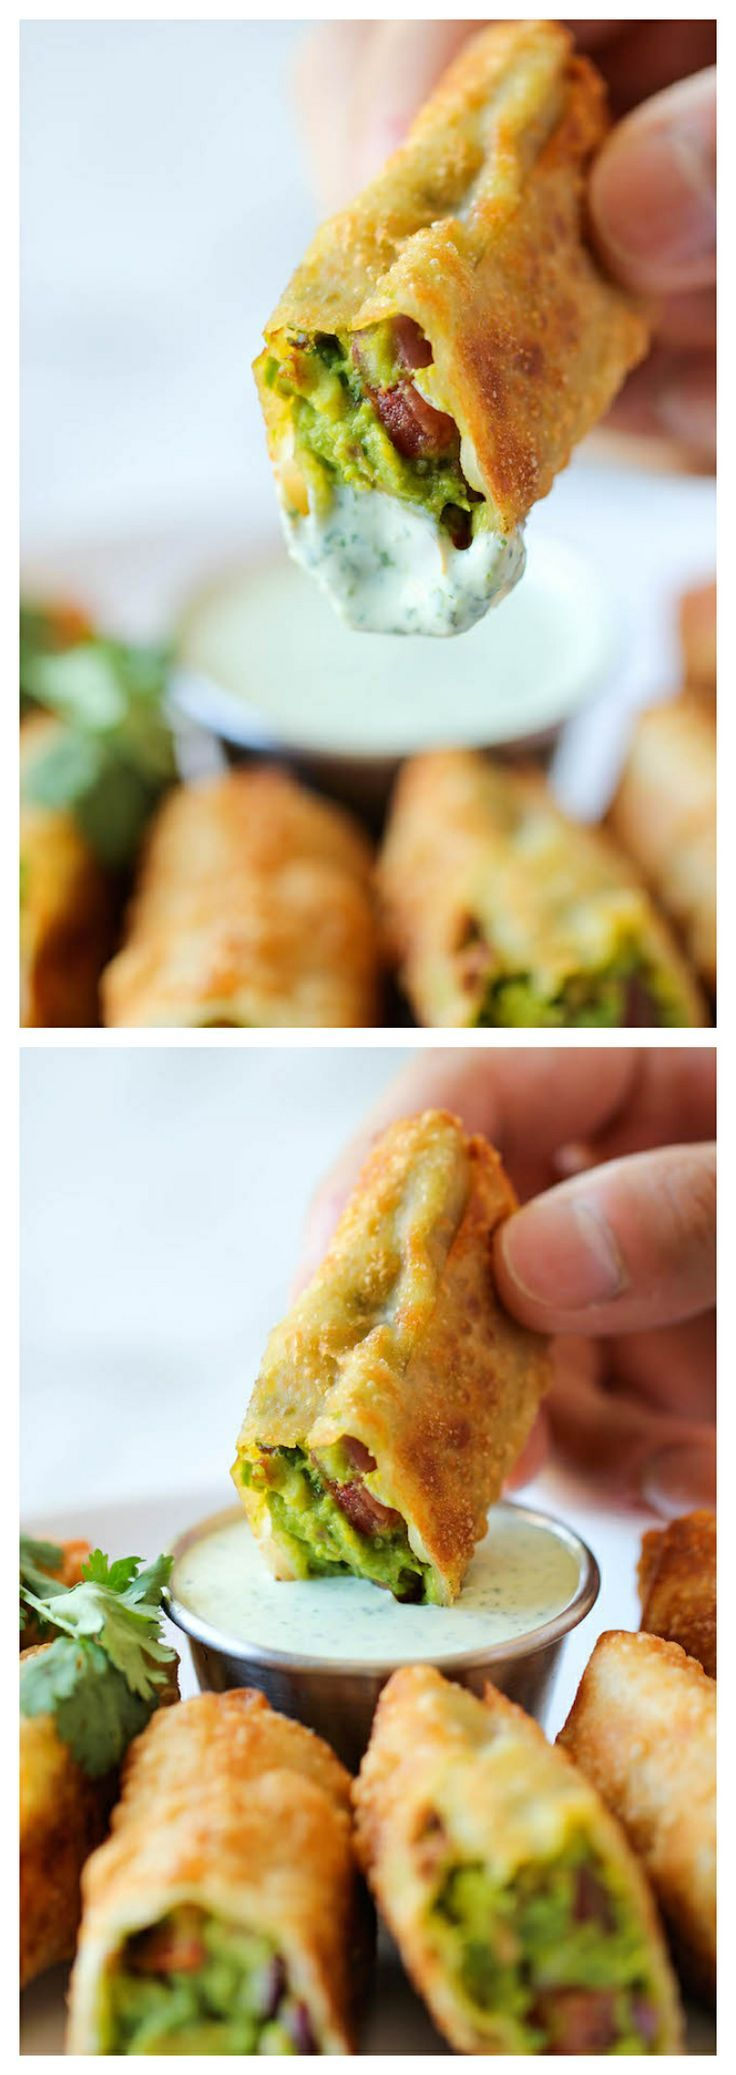 Cheesecake Factory Avocado Egg Rolls - It's so much cheaper to make right at home and they even taste better too !